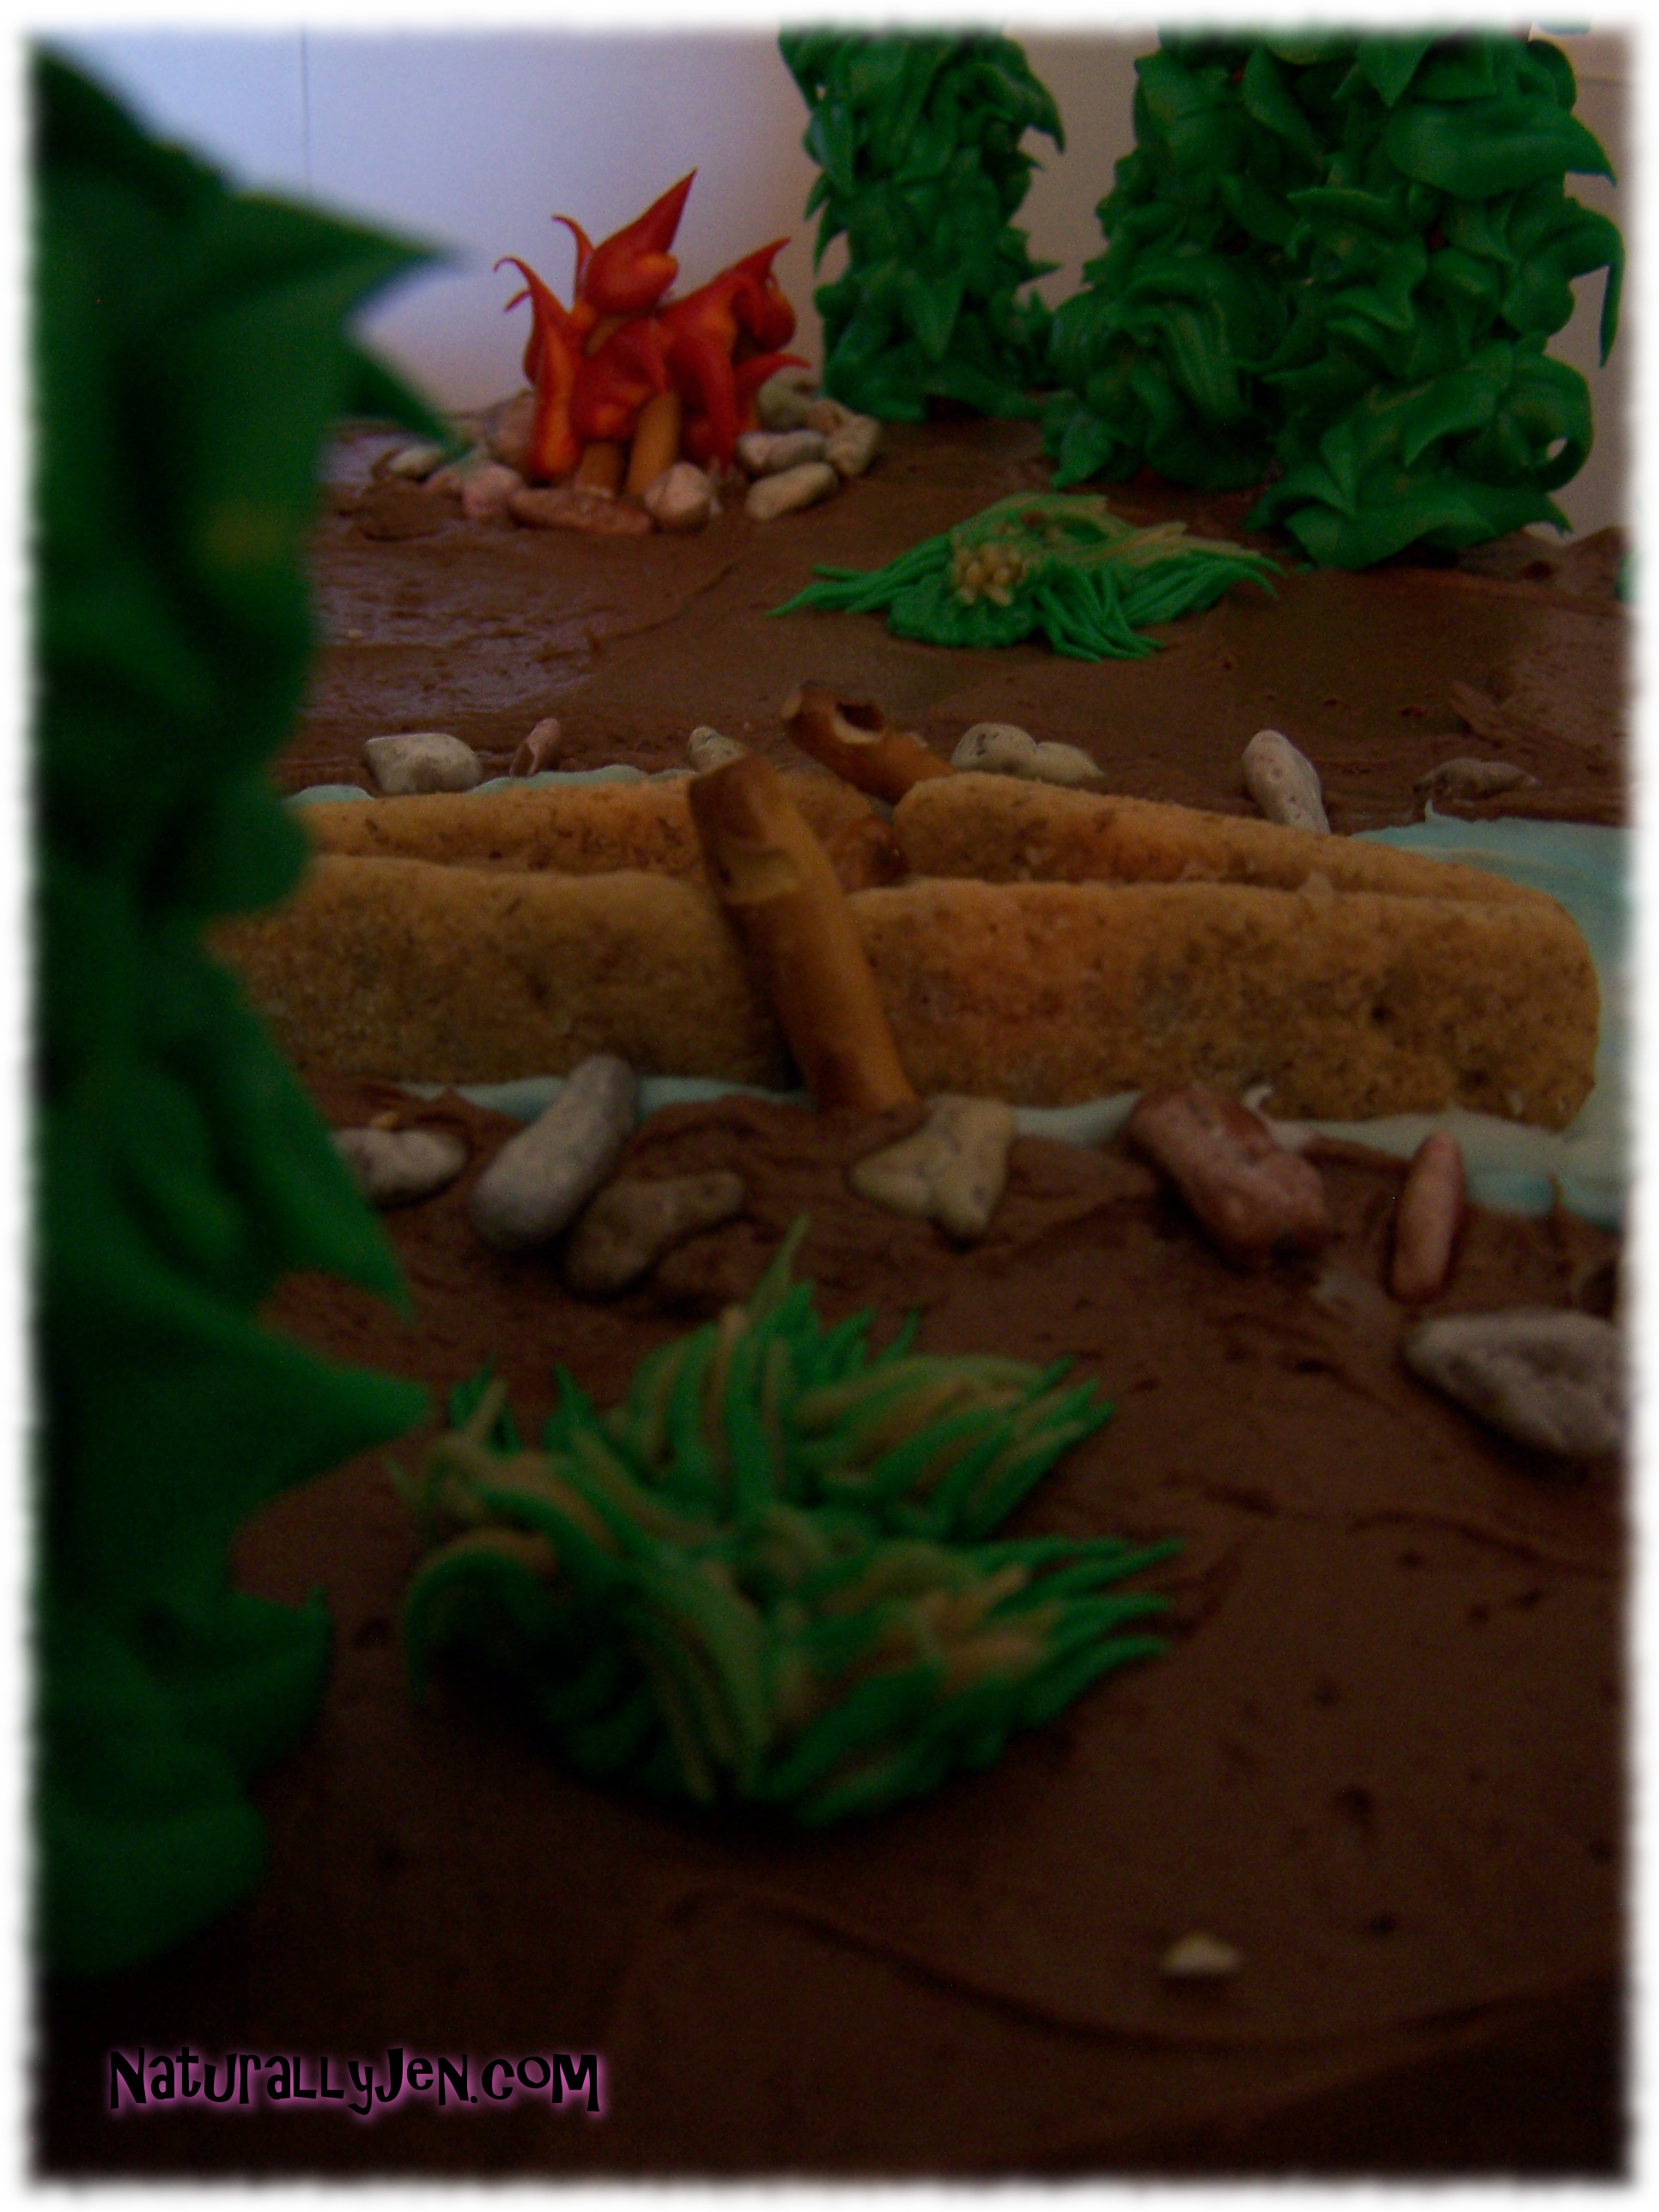 Themed Birthday Cakes with edible Canoe, Edible Fire and Edible Trees